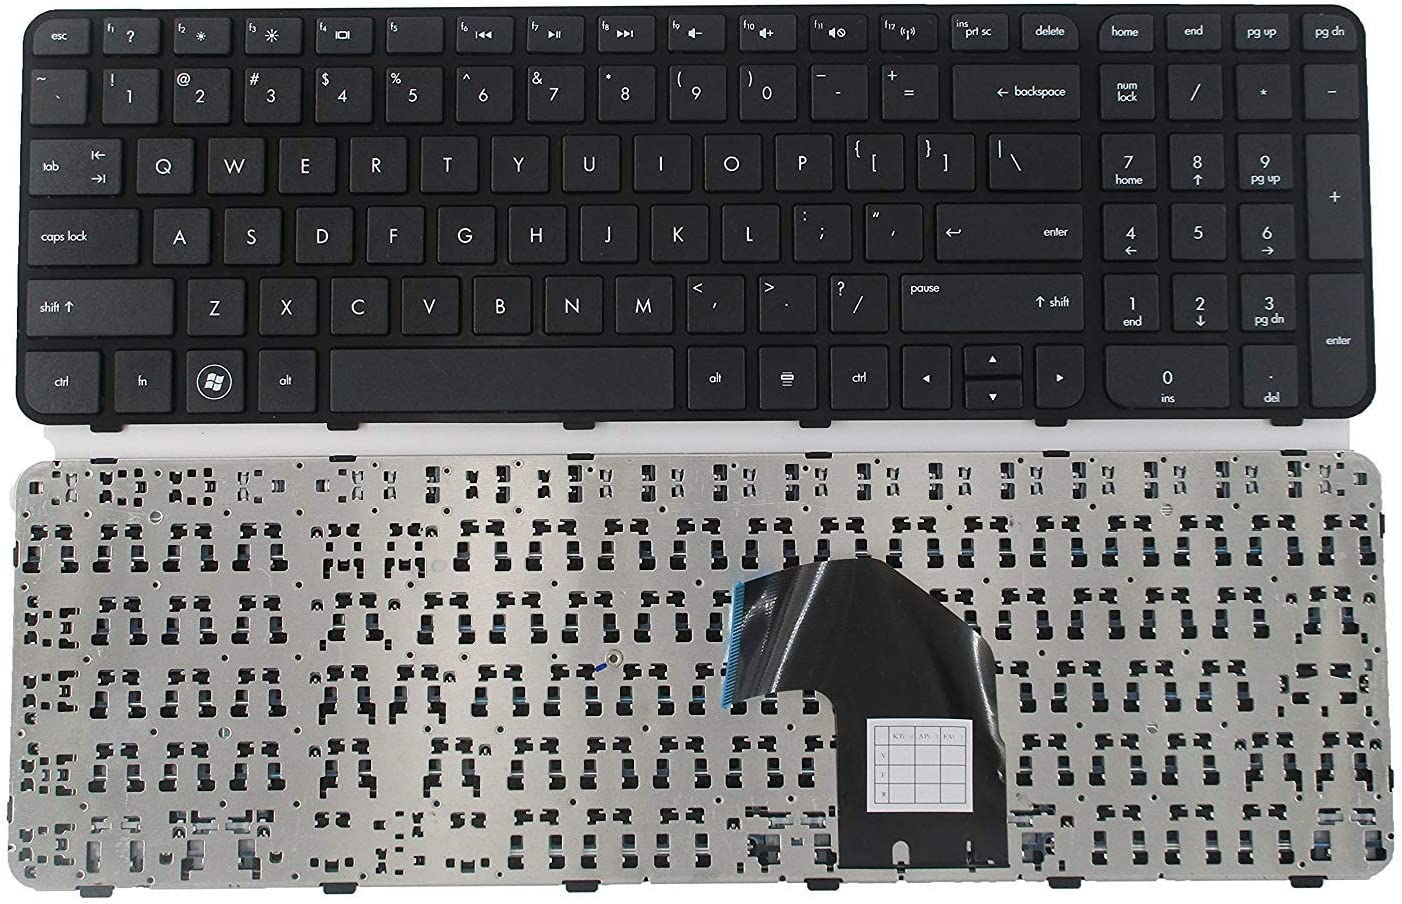 Replacement Keyboard with Frame Compatible with HP Pavilion G6-2000 G6-2100 G6-2200 G6-2300 G6T-2000 g6-2002xx g6-2010nr g6-2090